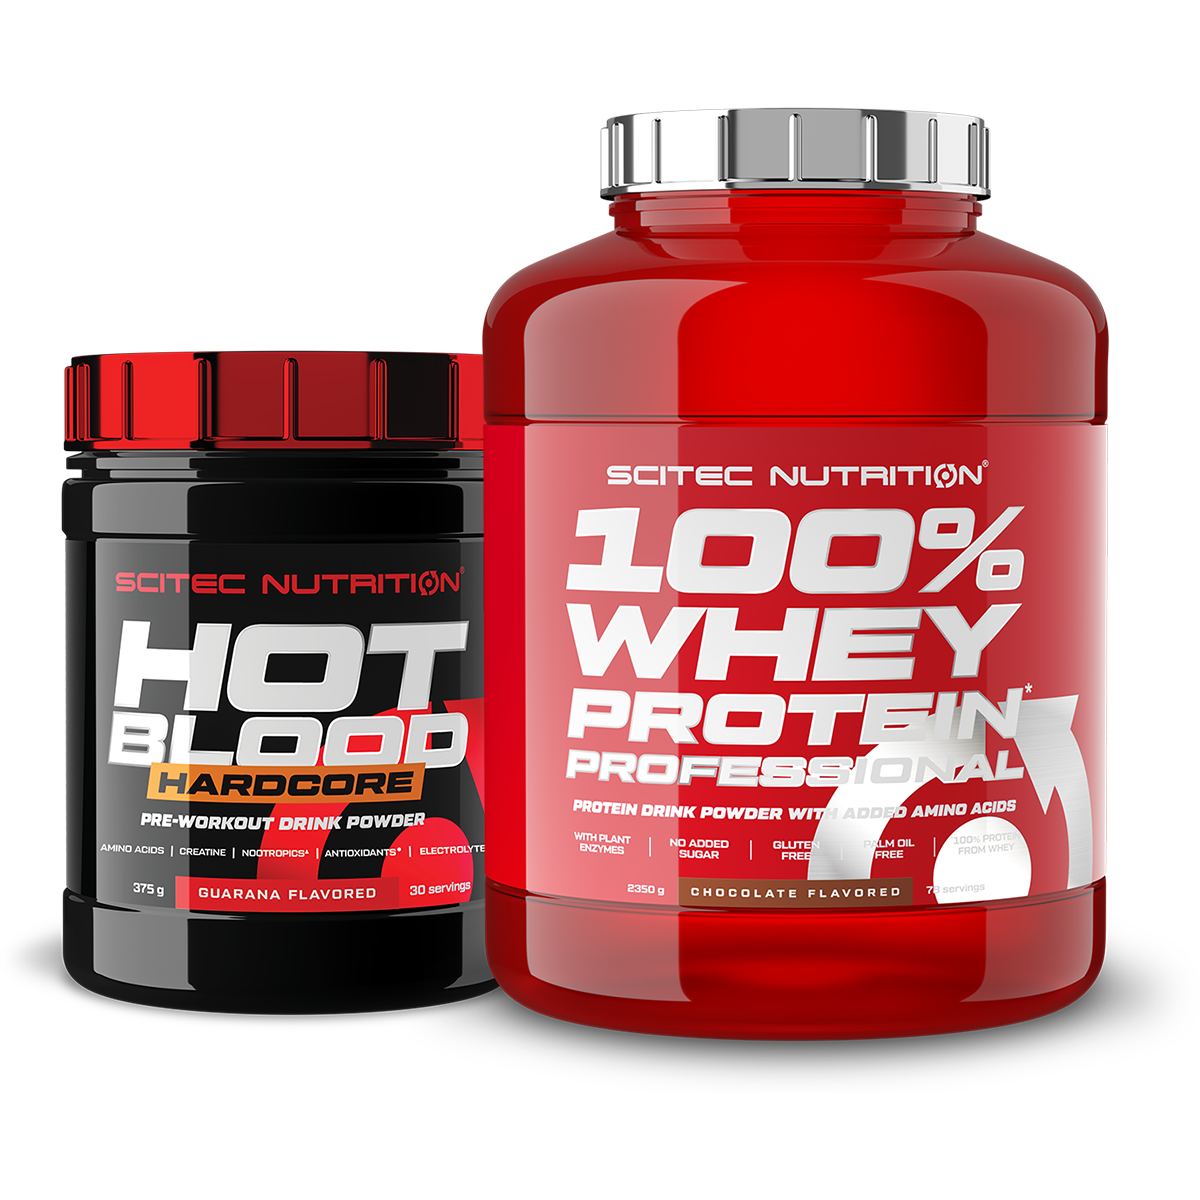 Scitec Nutrition 100% Whey Protein Professional + Hot Blood Hardcore set